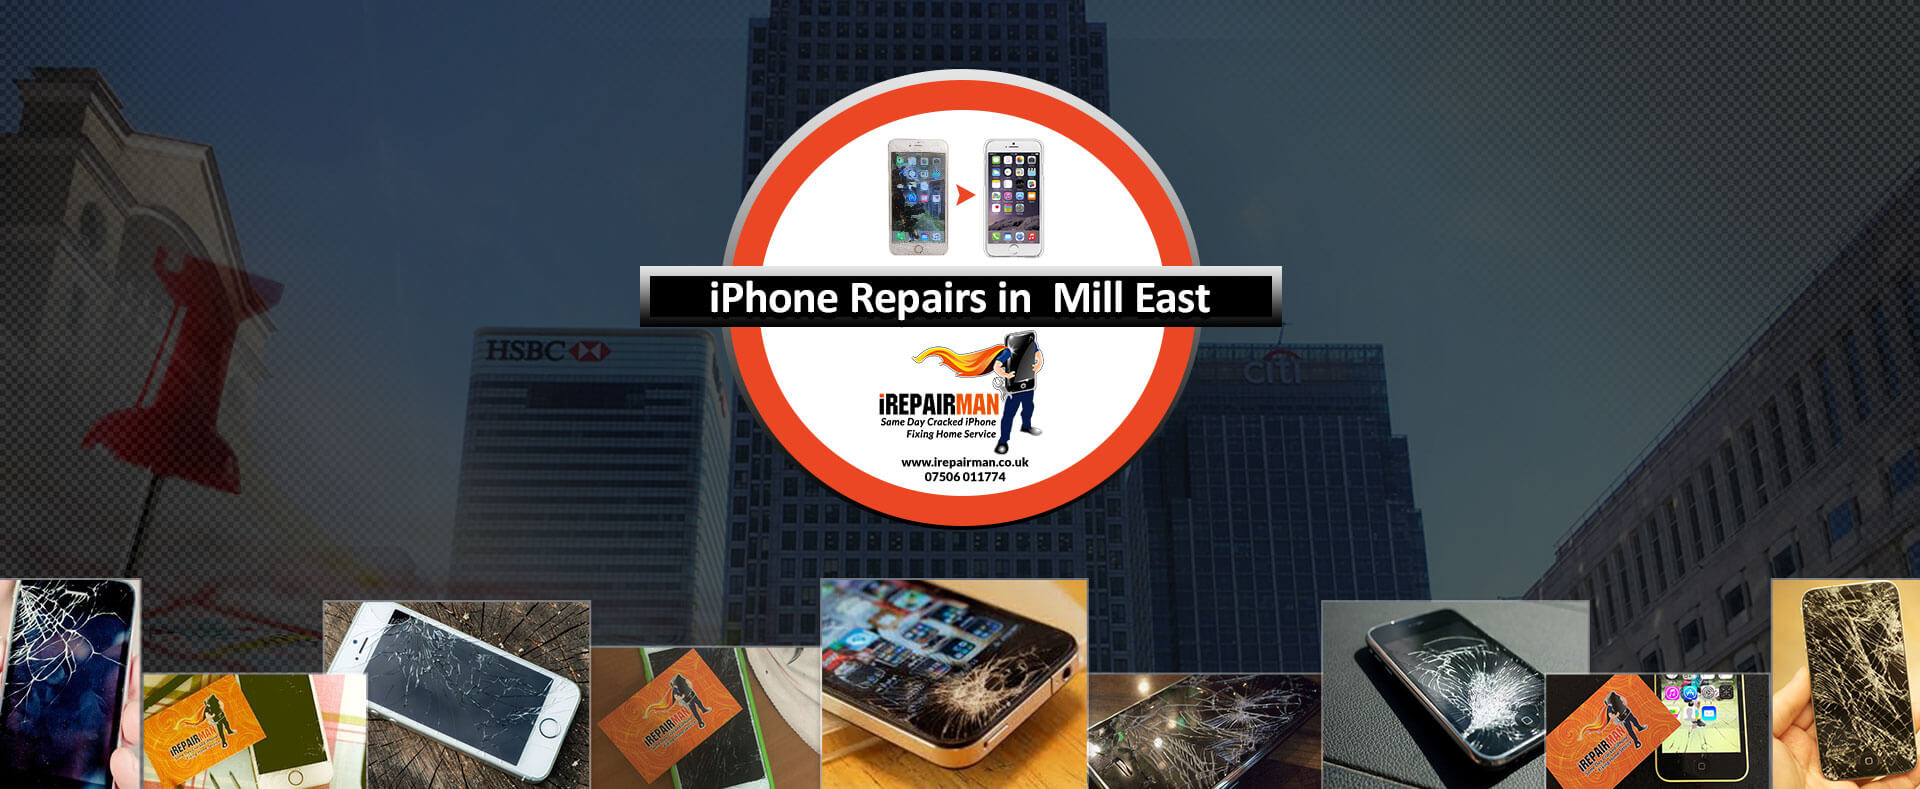 iPhone Repairs in Mill East